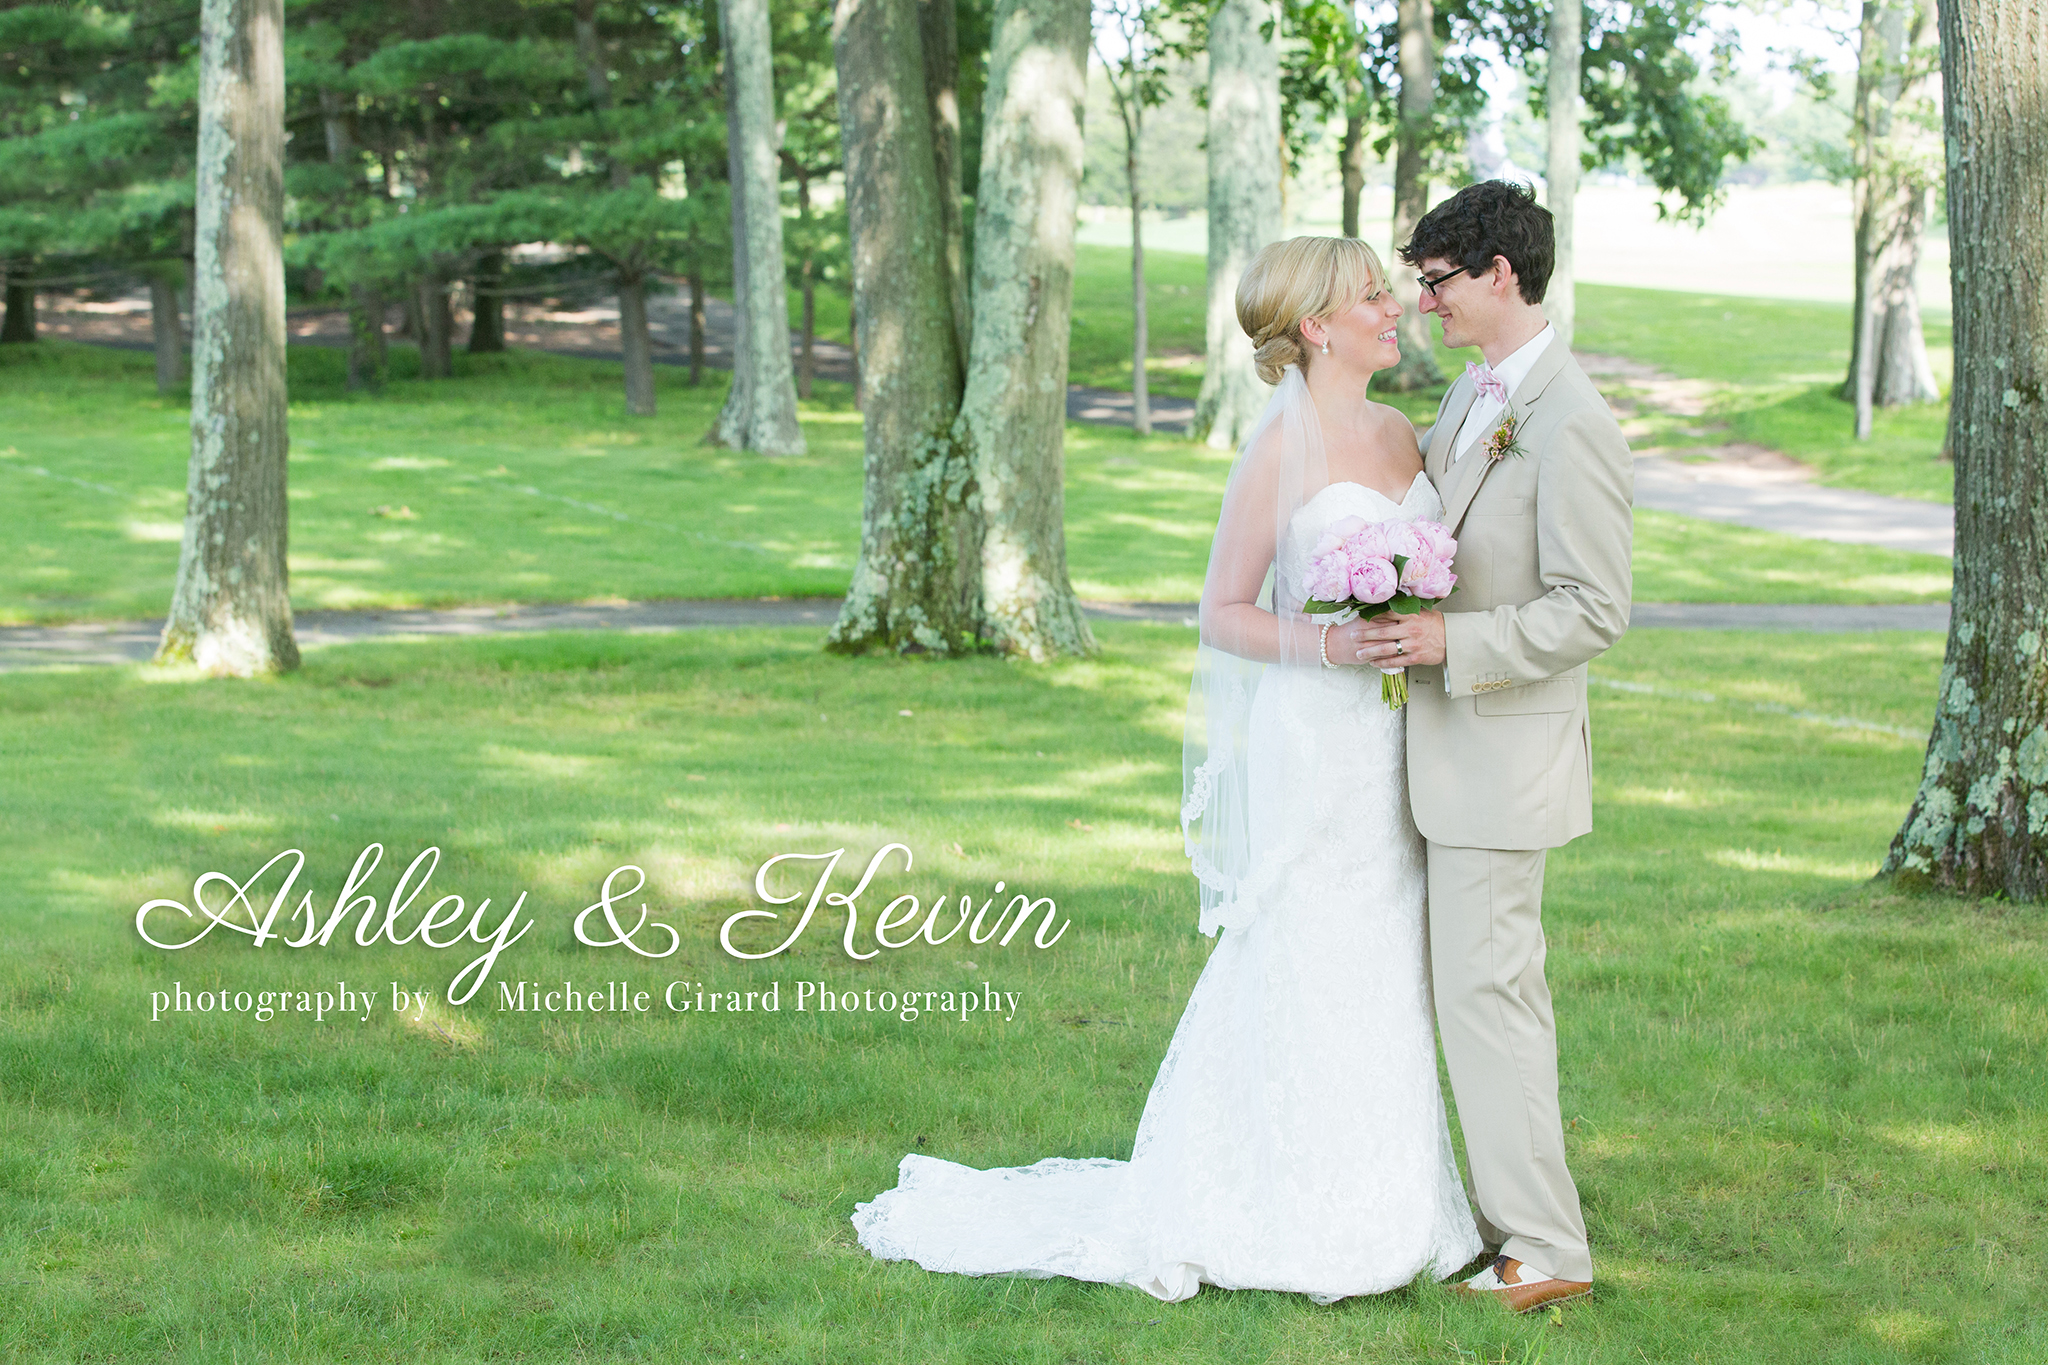 FarmsCountryClub_SummerWedding_MichelleGirardPhotographyb.jpg